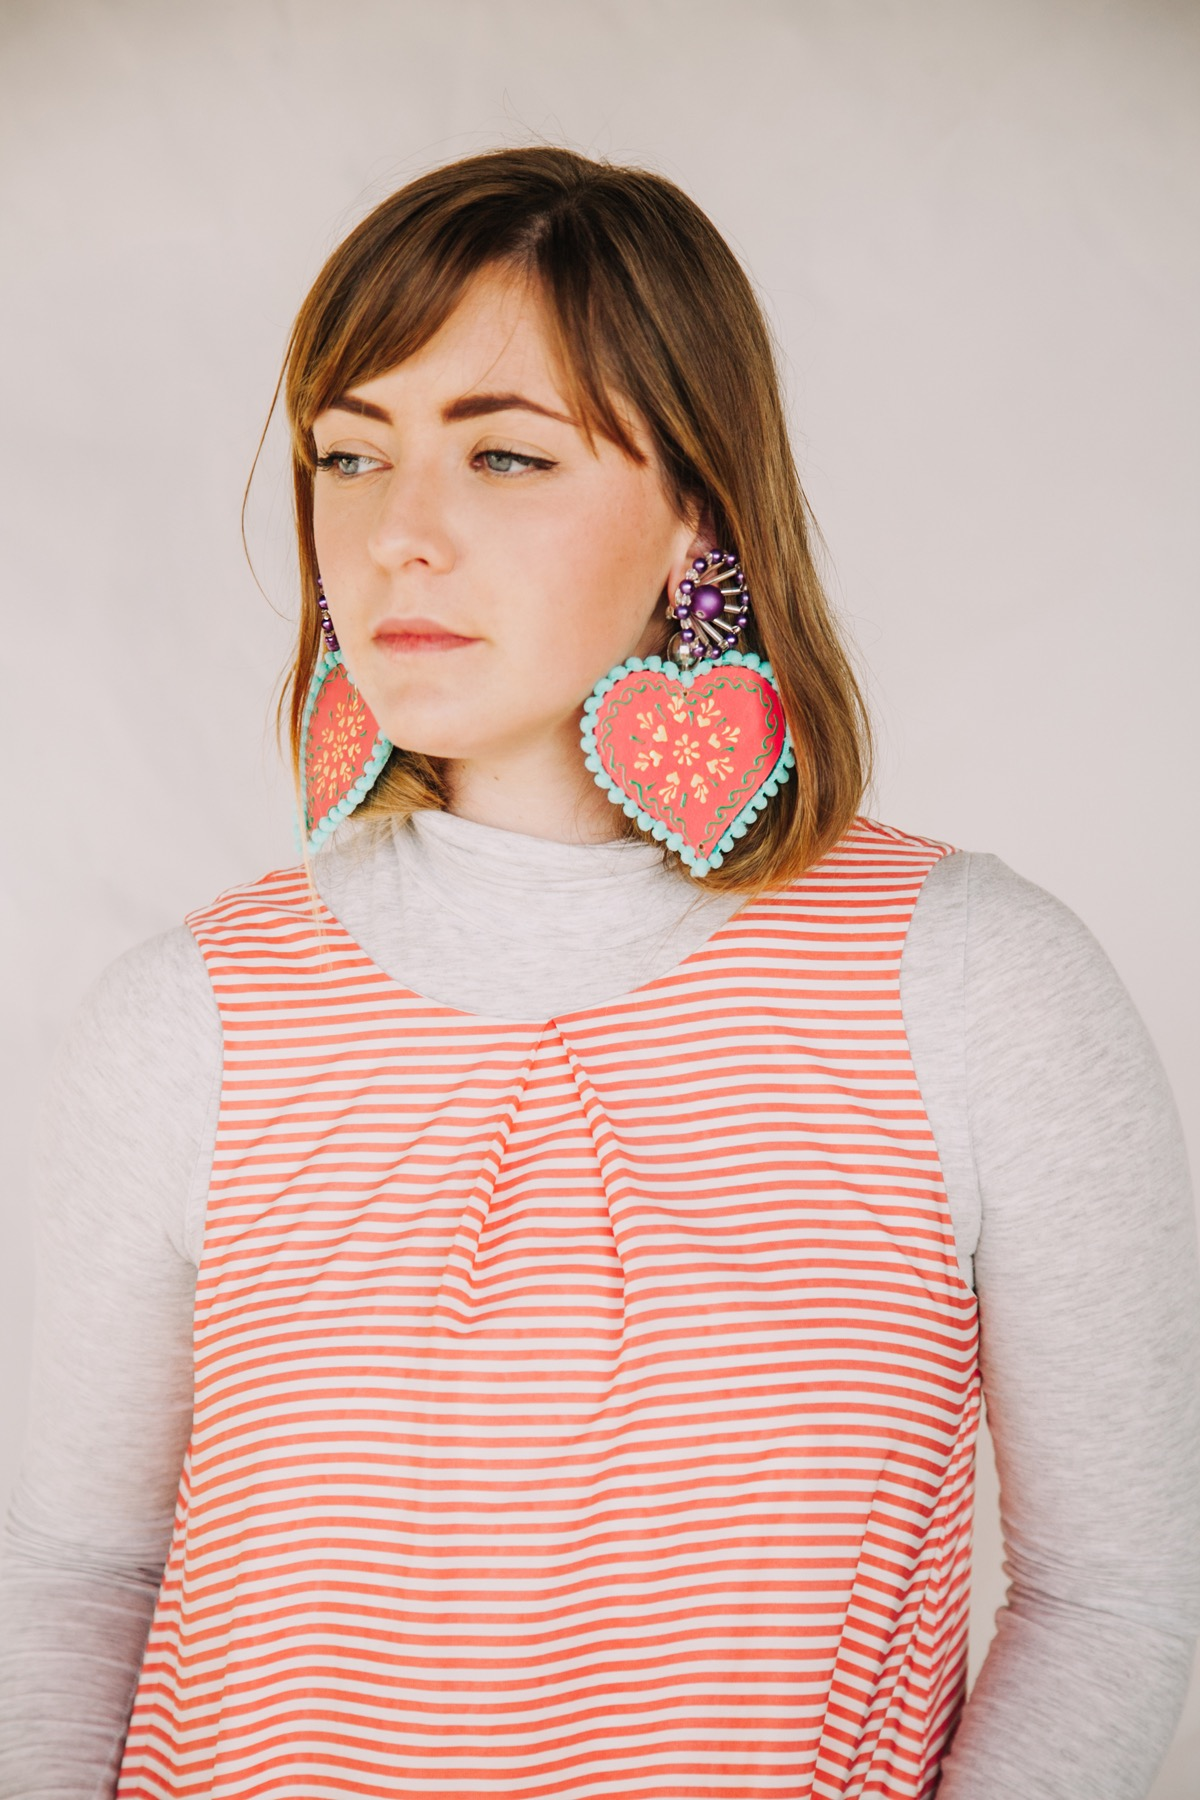 Painted - Wooden | SpoungyThese handpainted Indian decorations make the most tremendous earrings.Lined with fuzzy pom pom trim, they really are a feast for the senses.